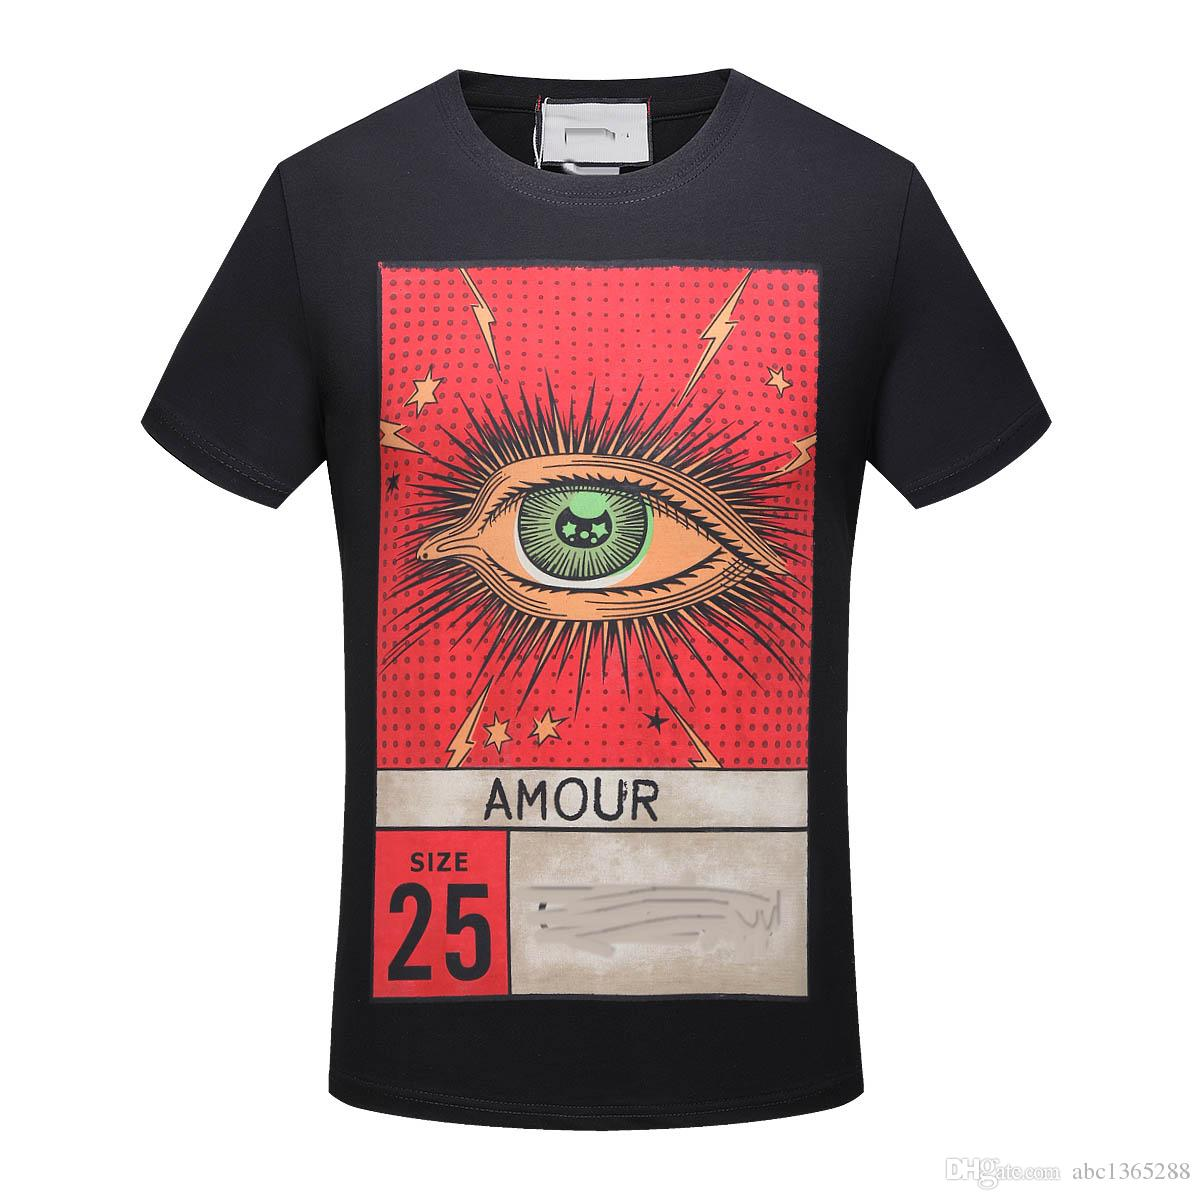 18ss Summer Street Wear Europe Paris Fashion Men High Quality Big Broken Hole Cotton Tshirt Casual Women Tee T Shirt S 2xl